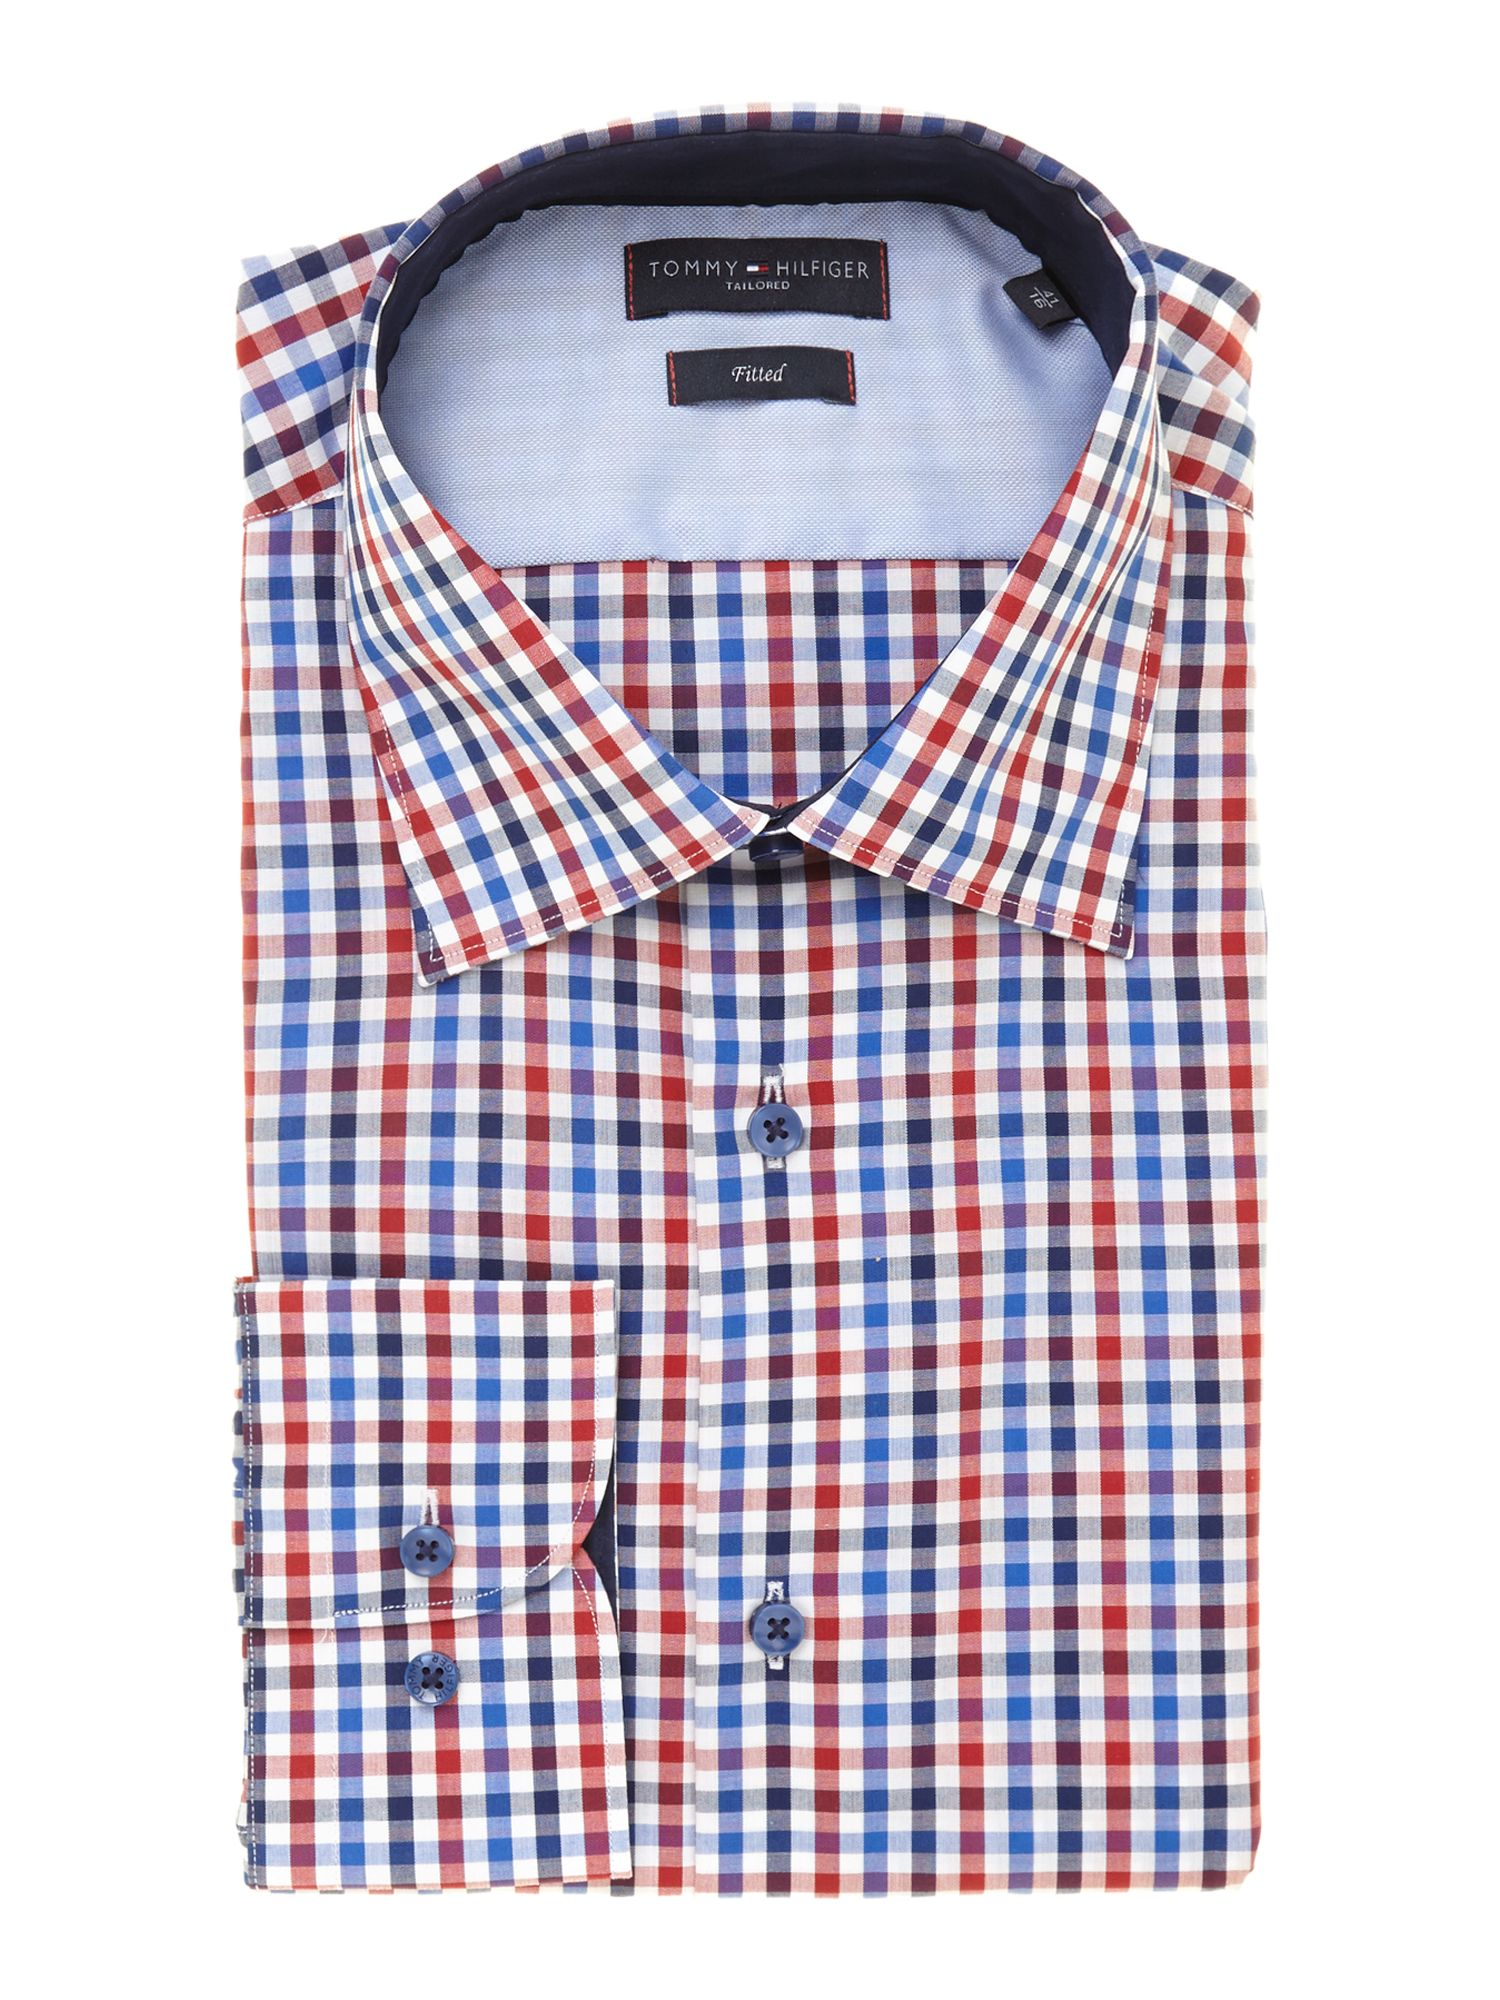 This is a lovely shirt that has washed without the usual flannel problem of becoming a wrinkly mess. The checked fabric is not 'lumberjack' thick, but is still soft and good quality, and the sleeves and hood are thick sweatshirt material.